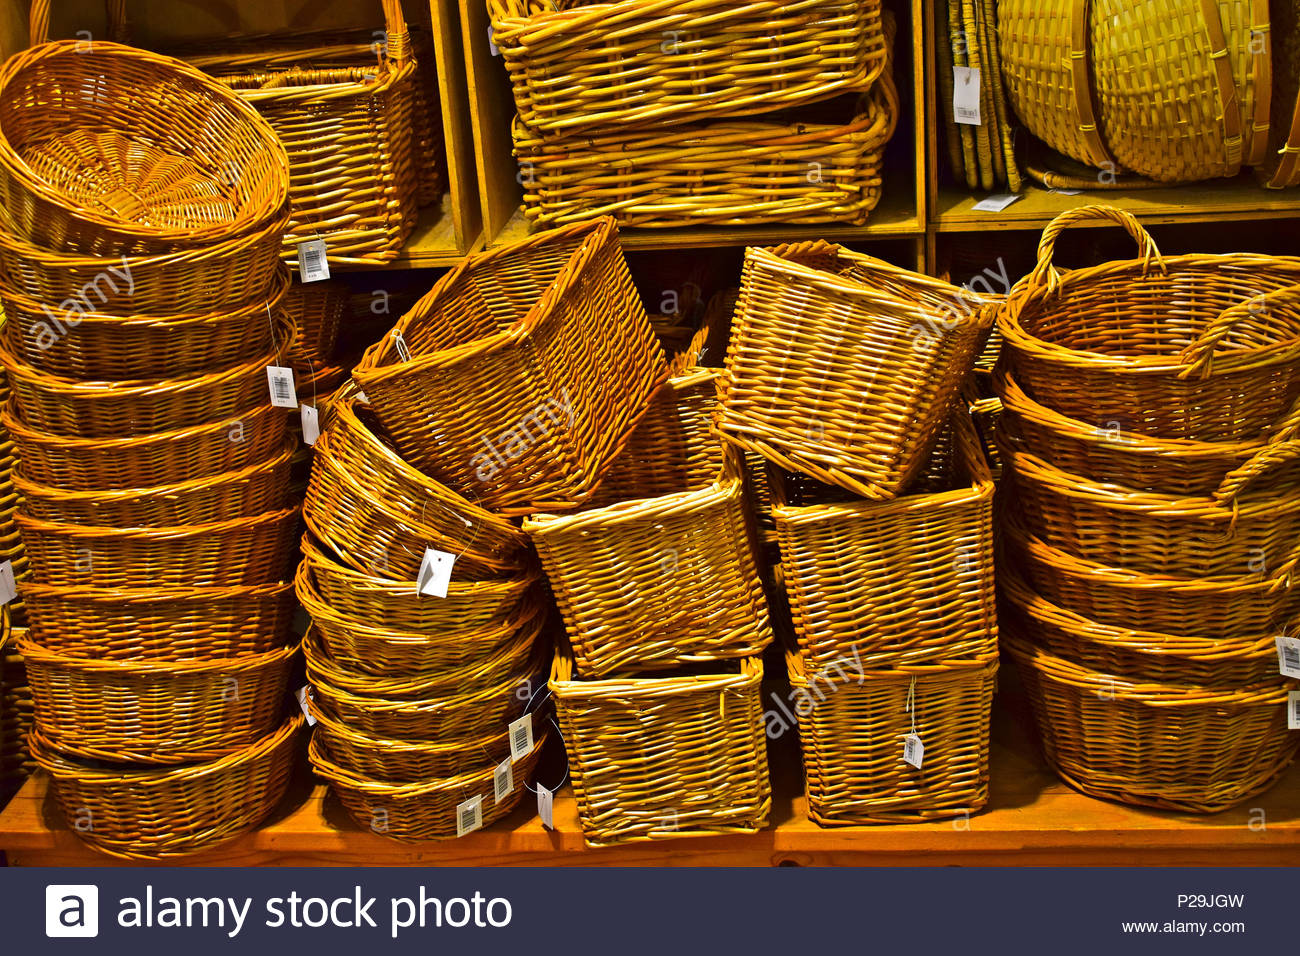 Basket Finishing Night